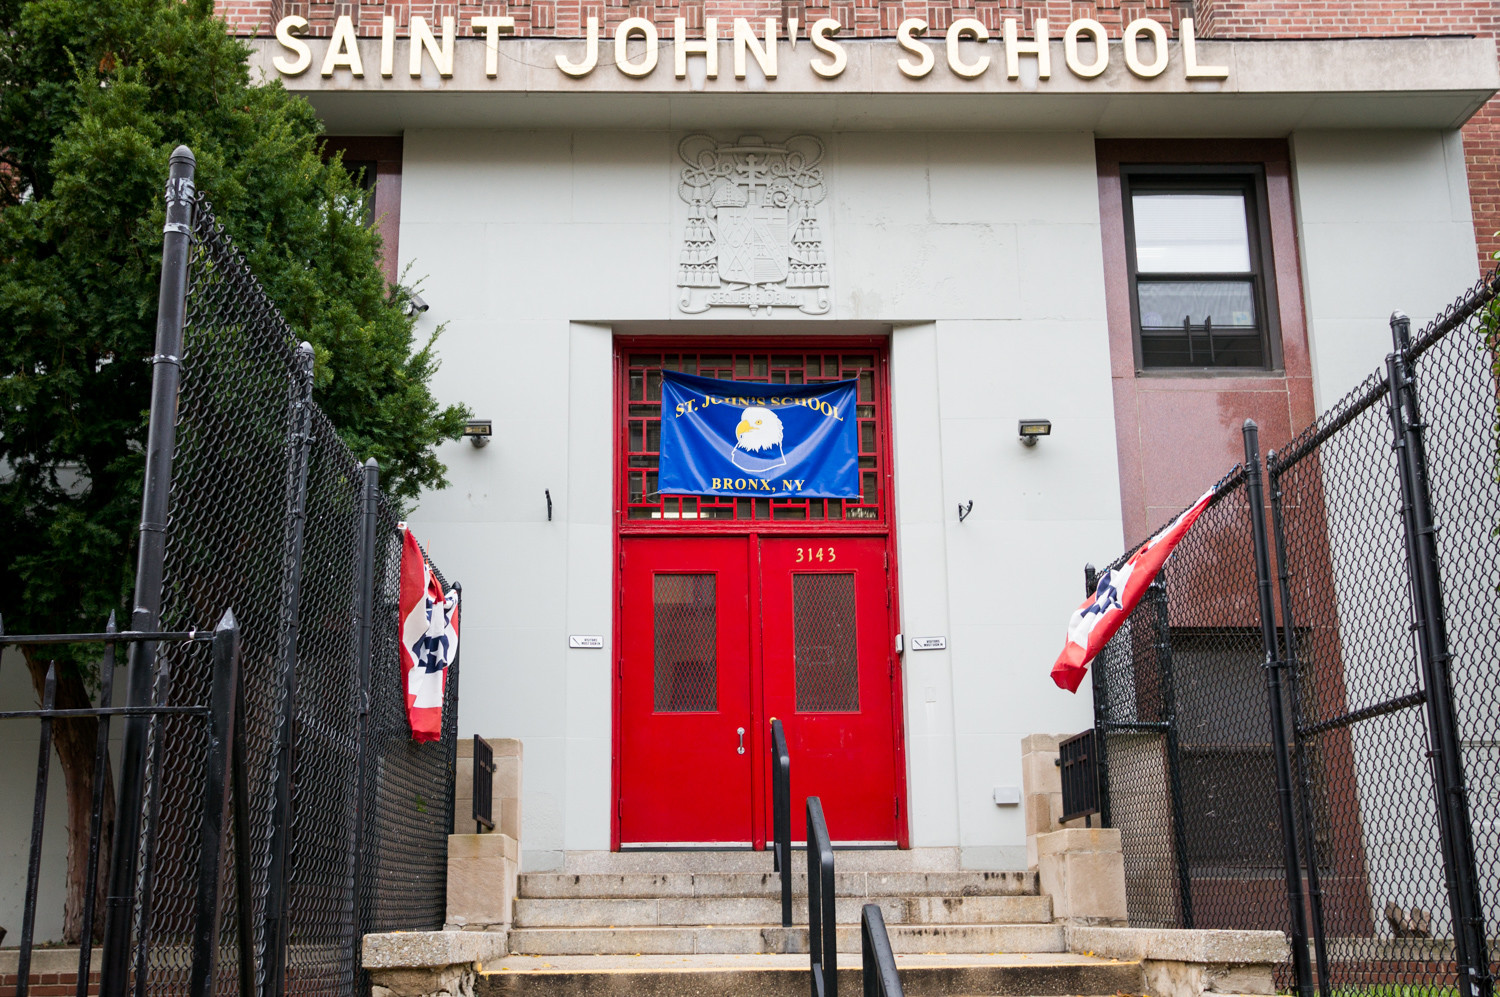 The academic year got off to a shocking start at St. John's School with the unexpected departure of its former principal, who Melissa Cardona-Moore replaced. Some parents express concern Cardona-Moore has not made herself available to them and will hurt the school long-term.